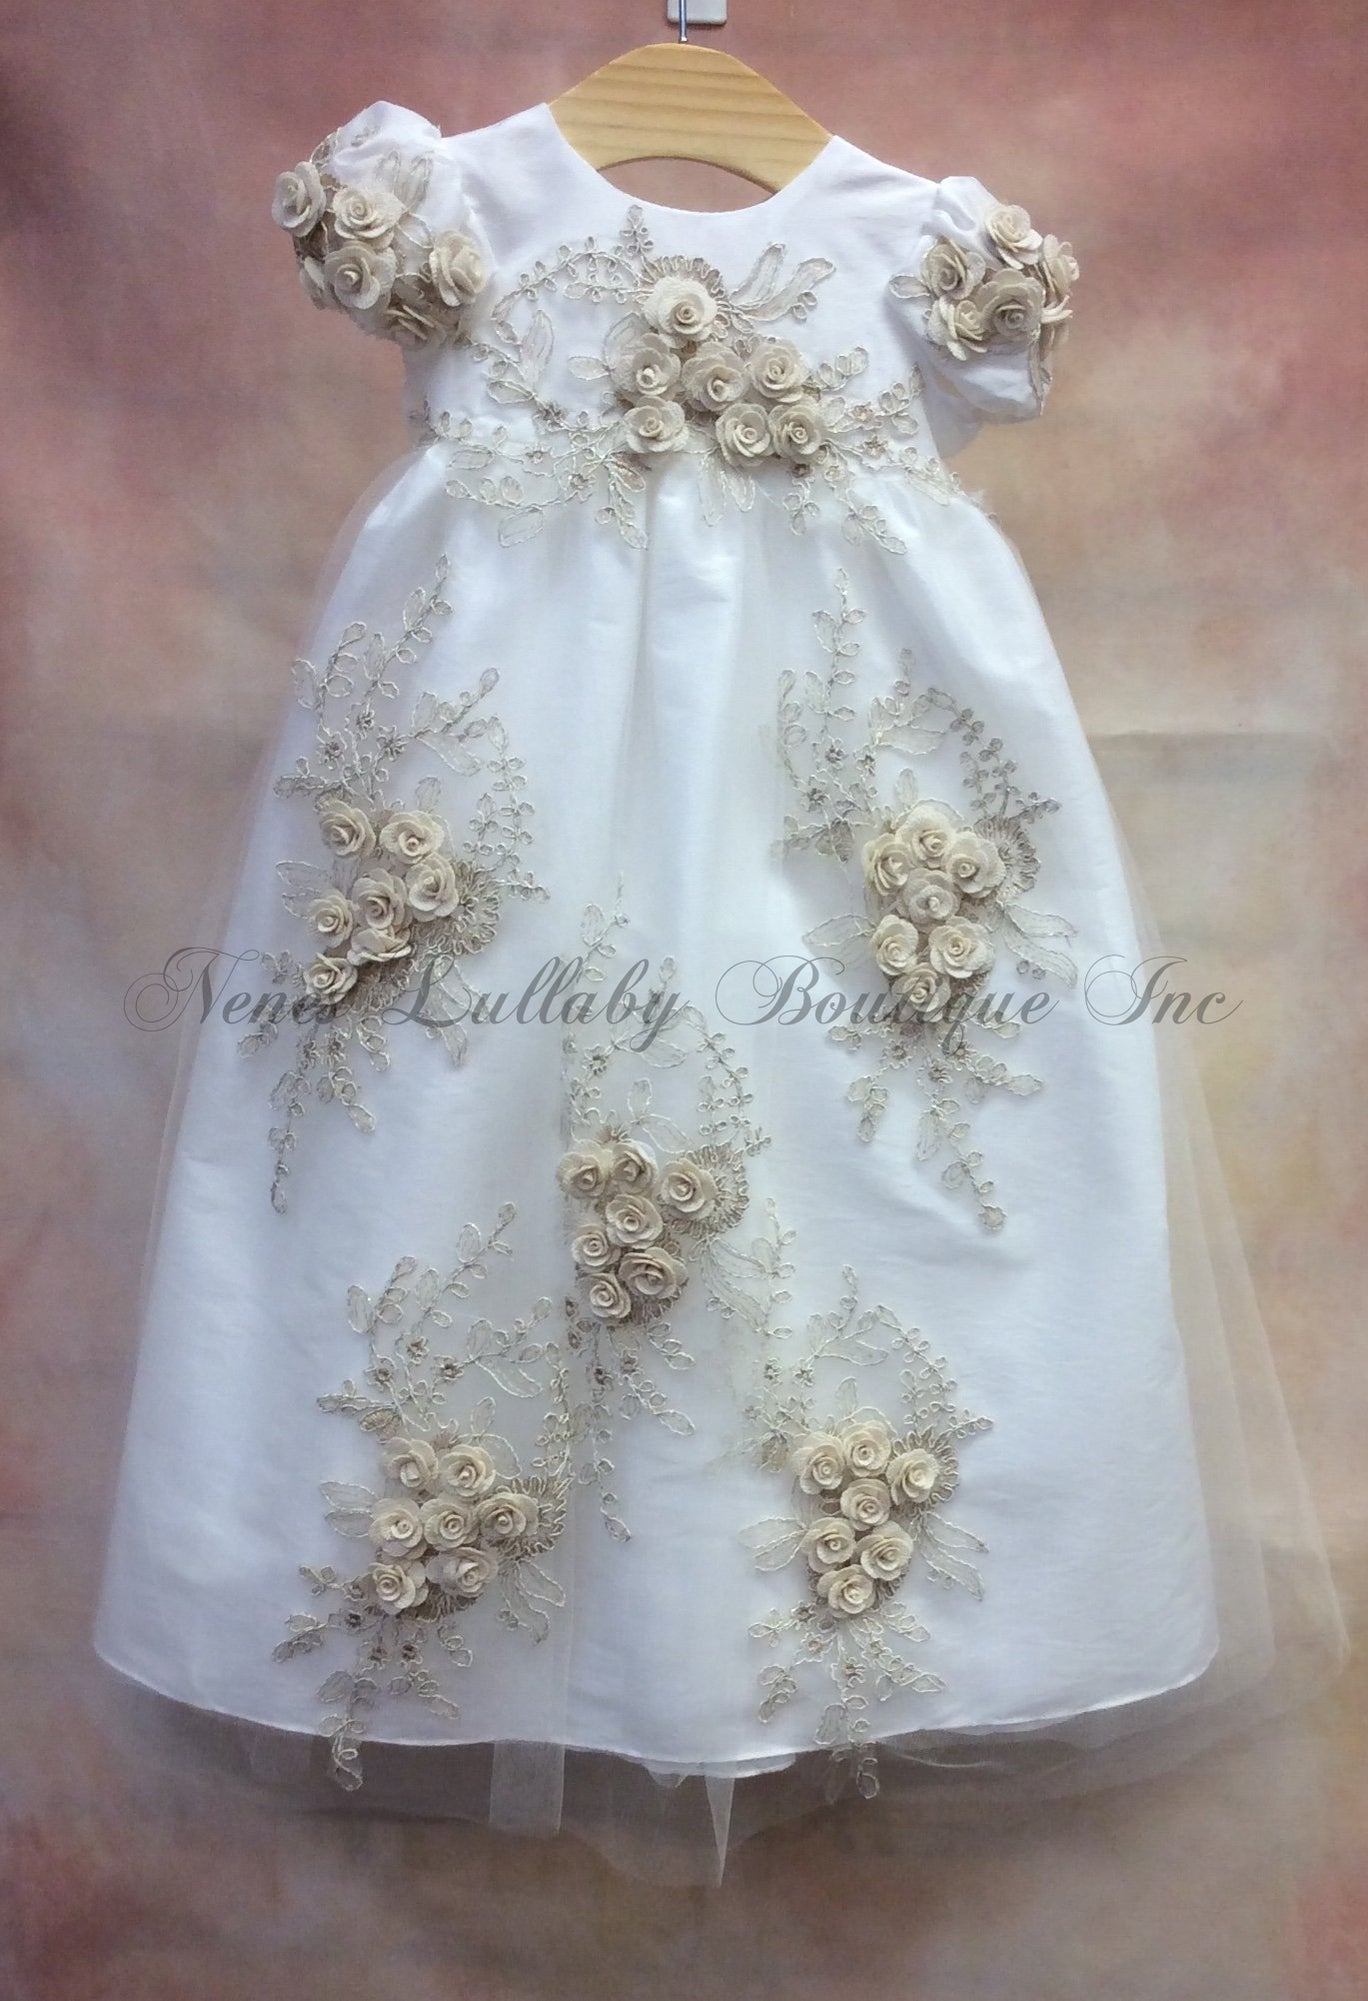 MDCH258IG_Long Christening Dress - Nenes Lullaby Boutique Inc